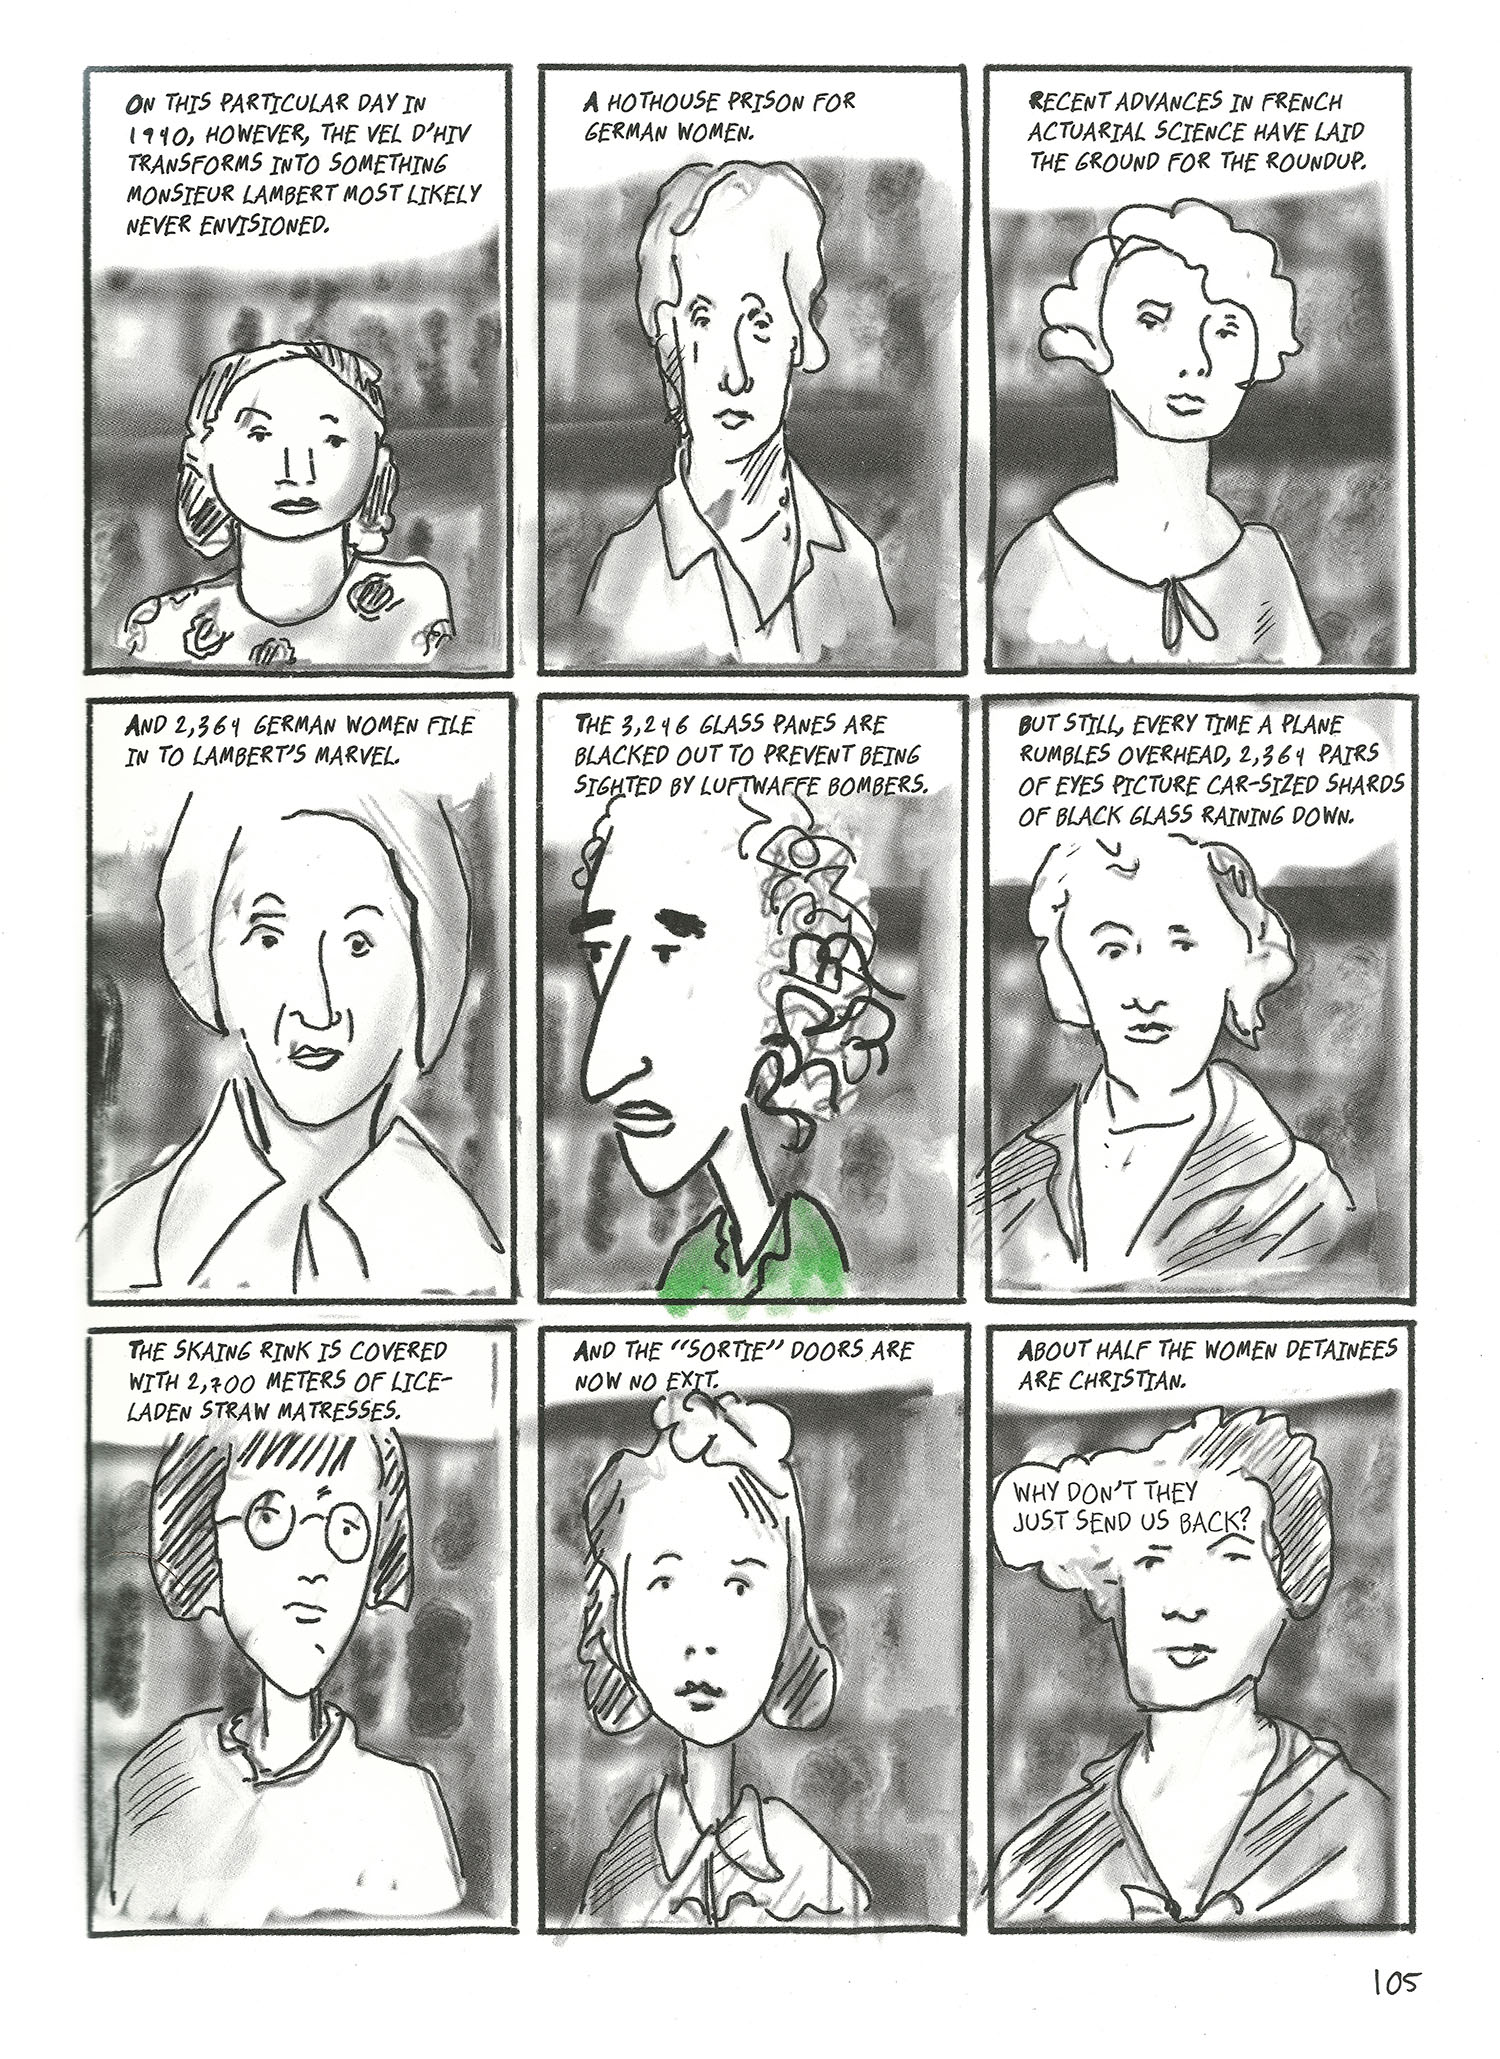 Quick portraits of nine German women in comic panels, with Arendt in the center panel.